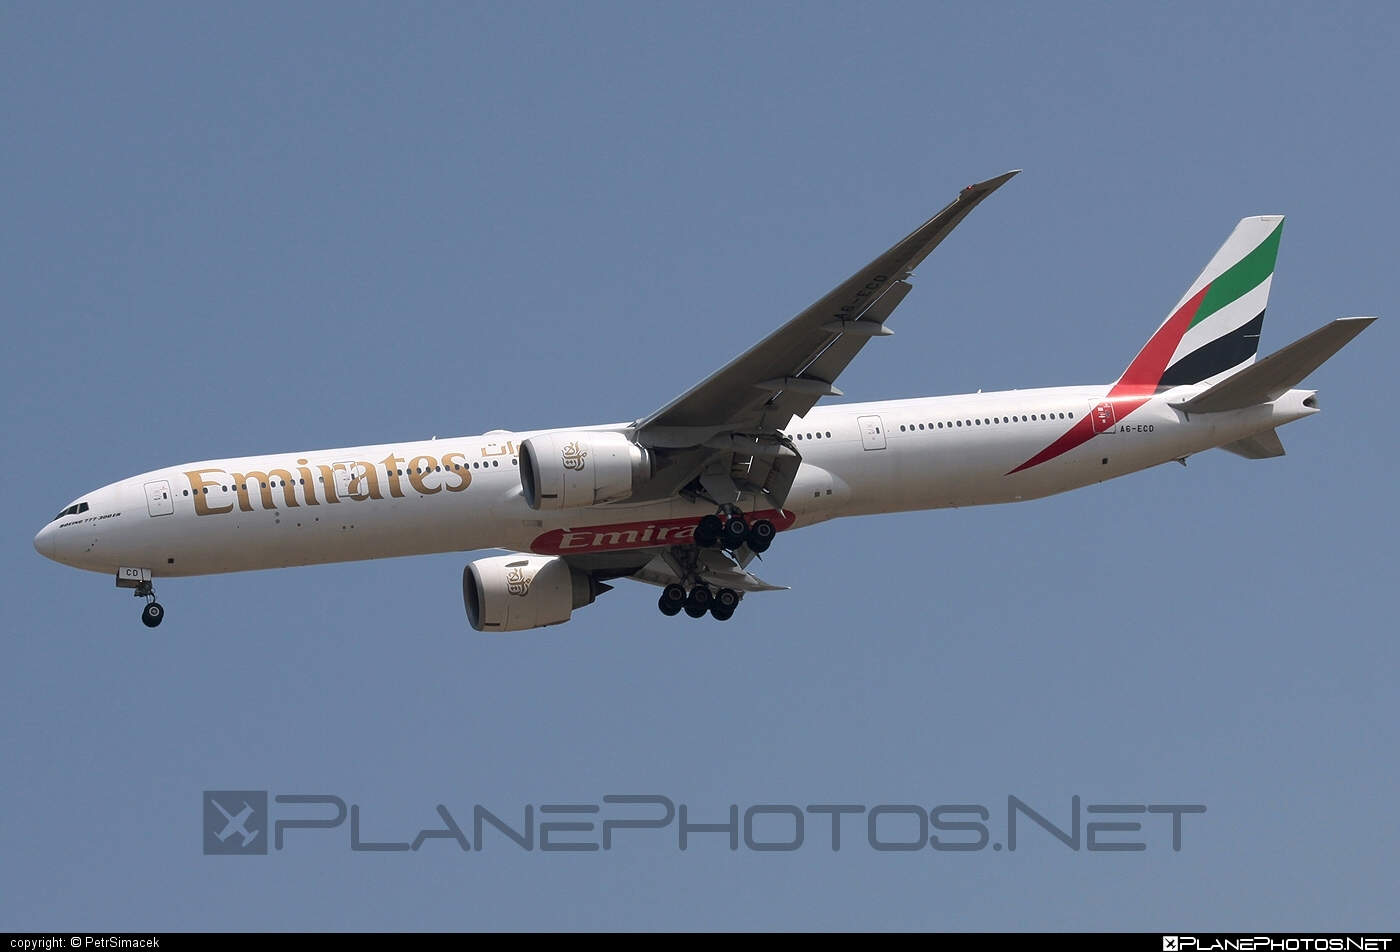 Boeing 777-300ER - A6-ECD operated by Emirates #b777 #b777er #boeing #boeing777 #emirates #tripleseven